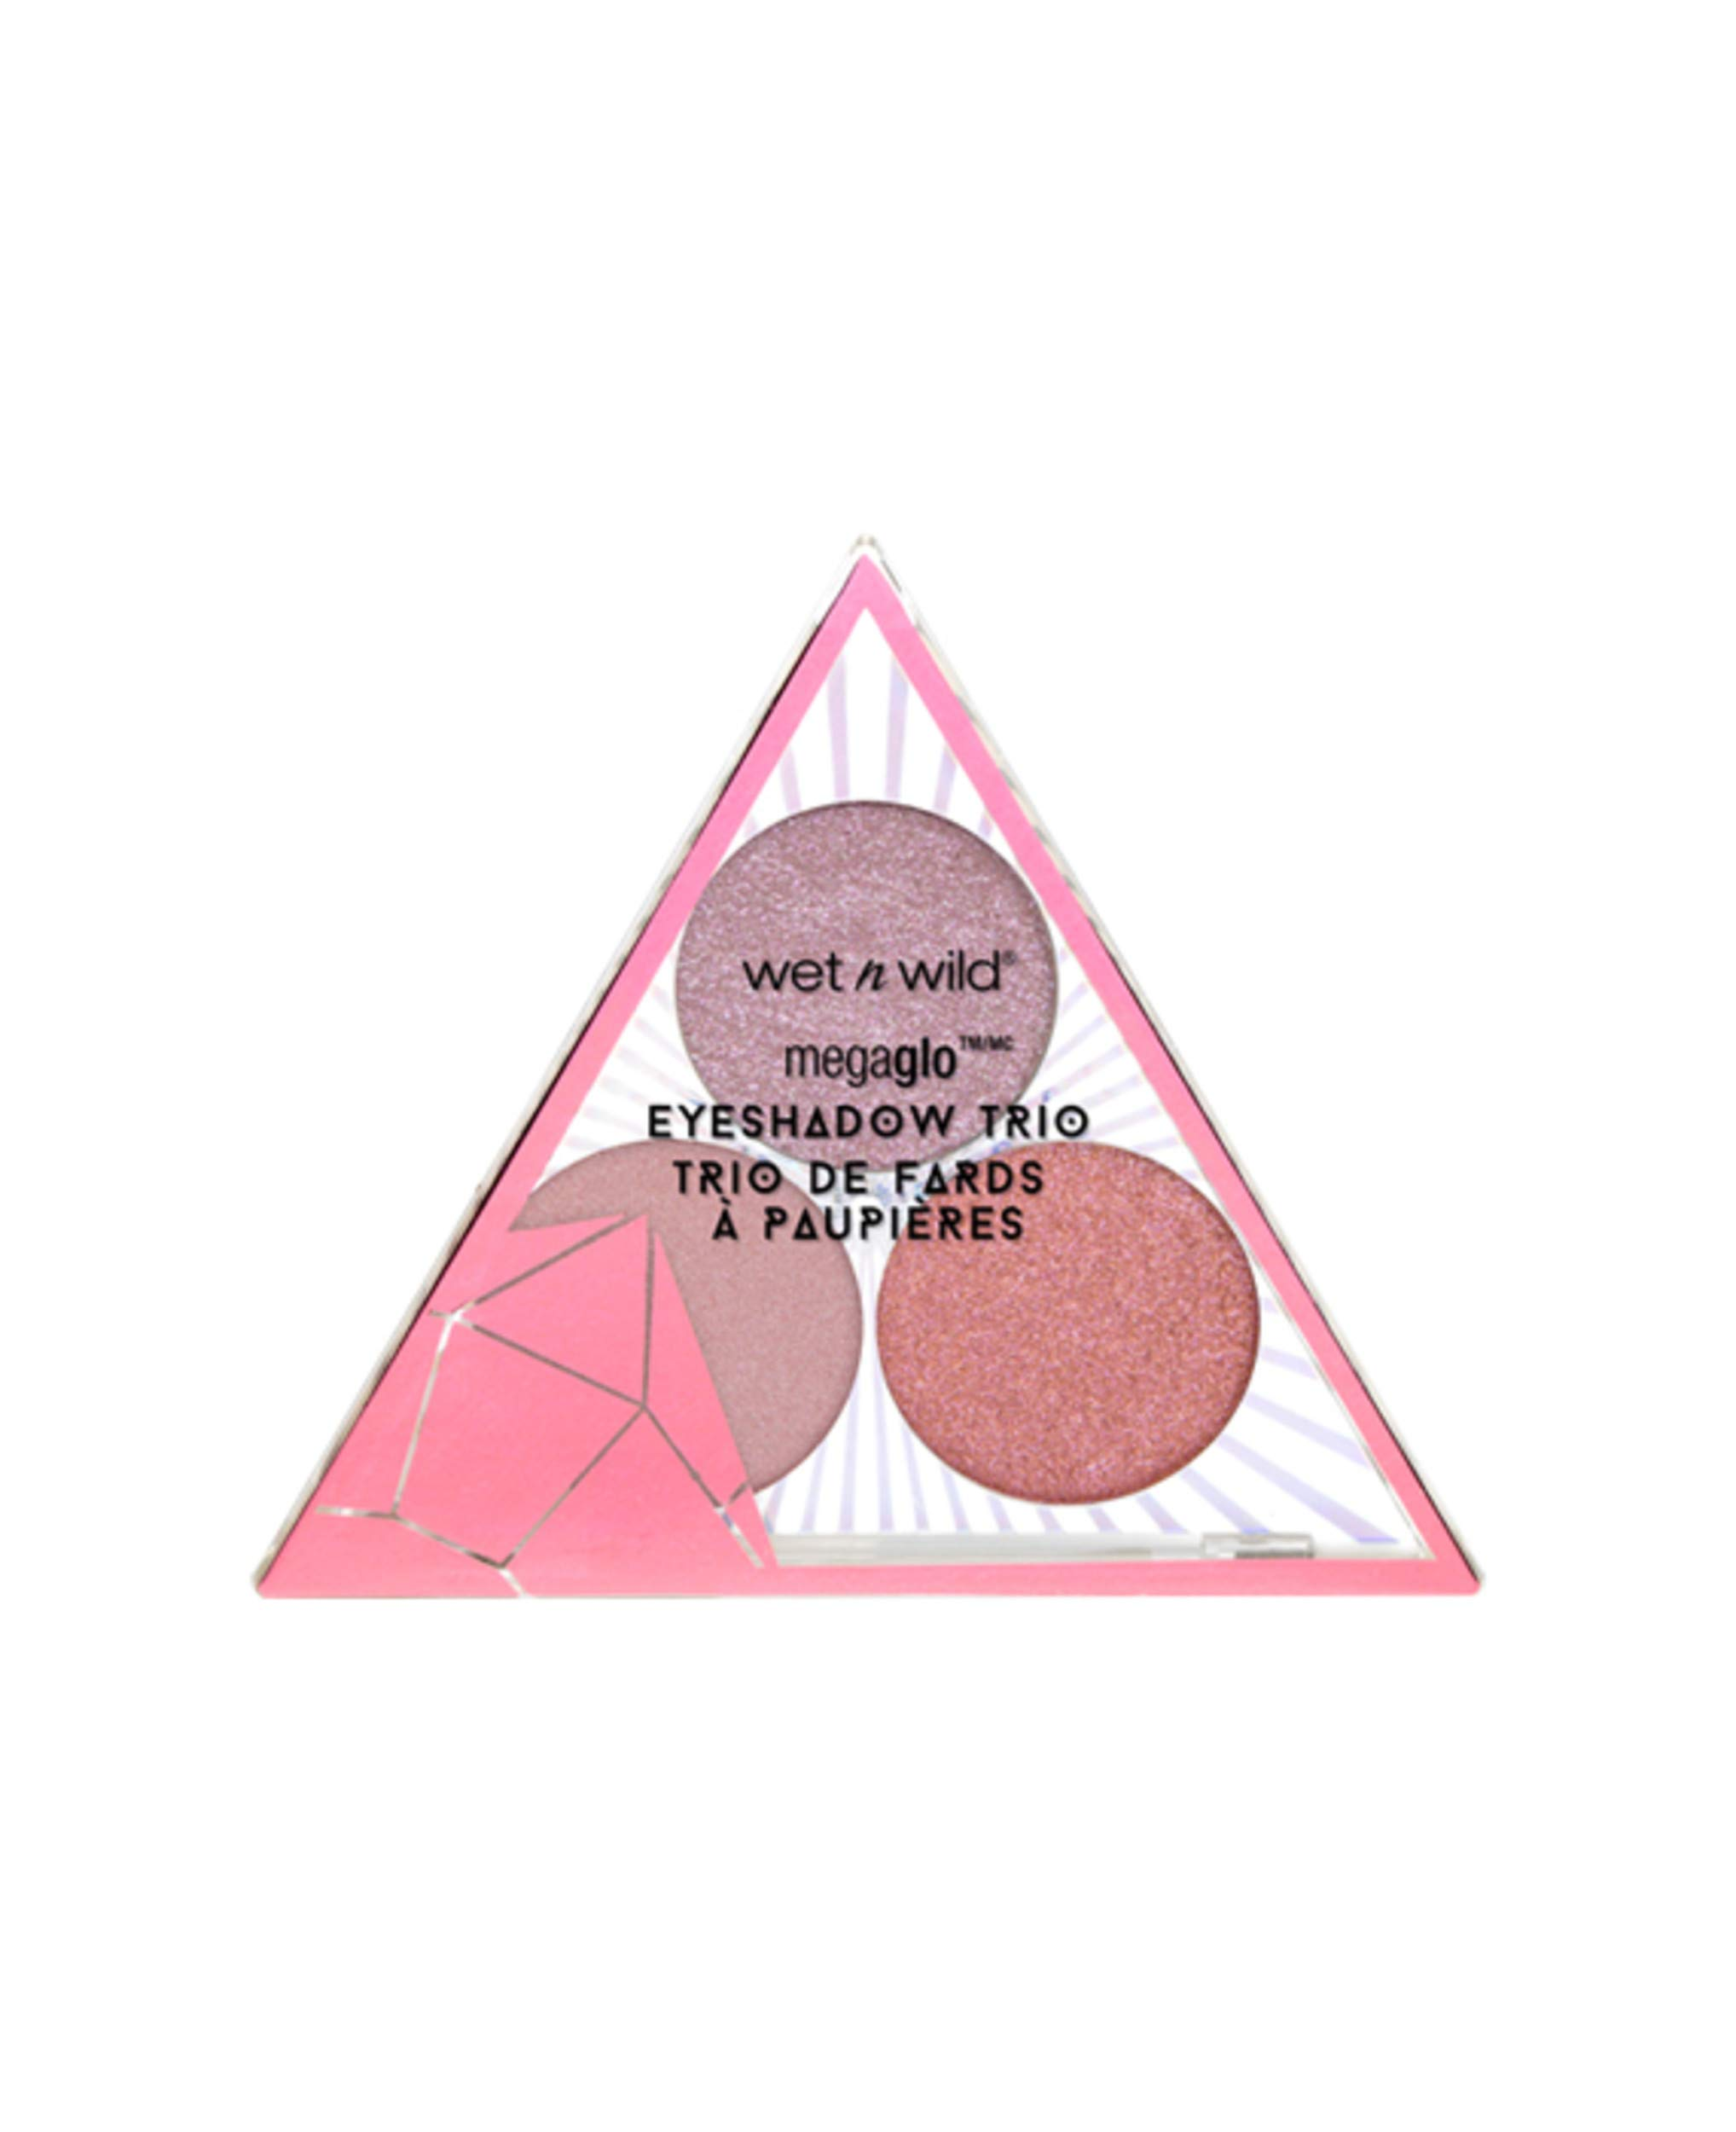 wet n wild Crystal Cavern Mega Glo Eyeshadow Trio, Rose Quartz